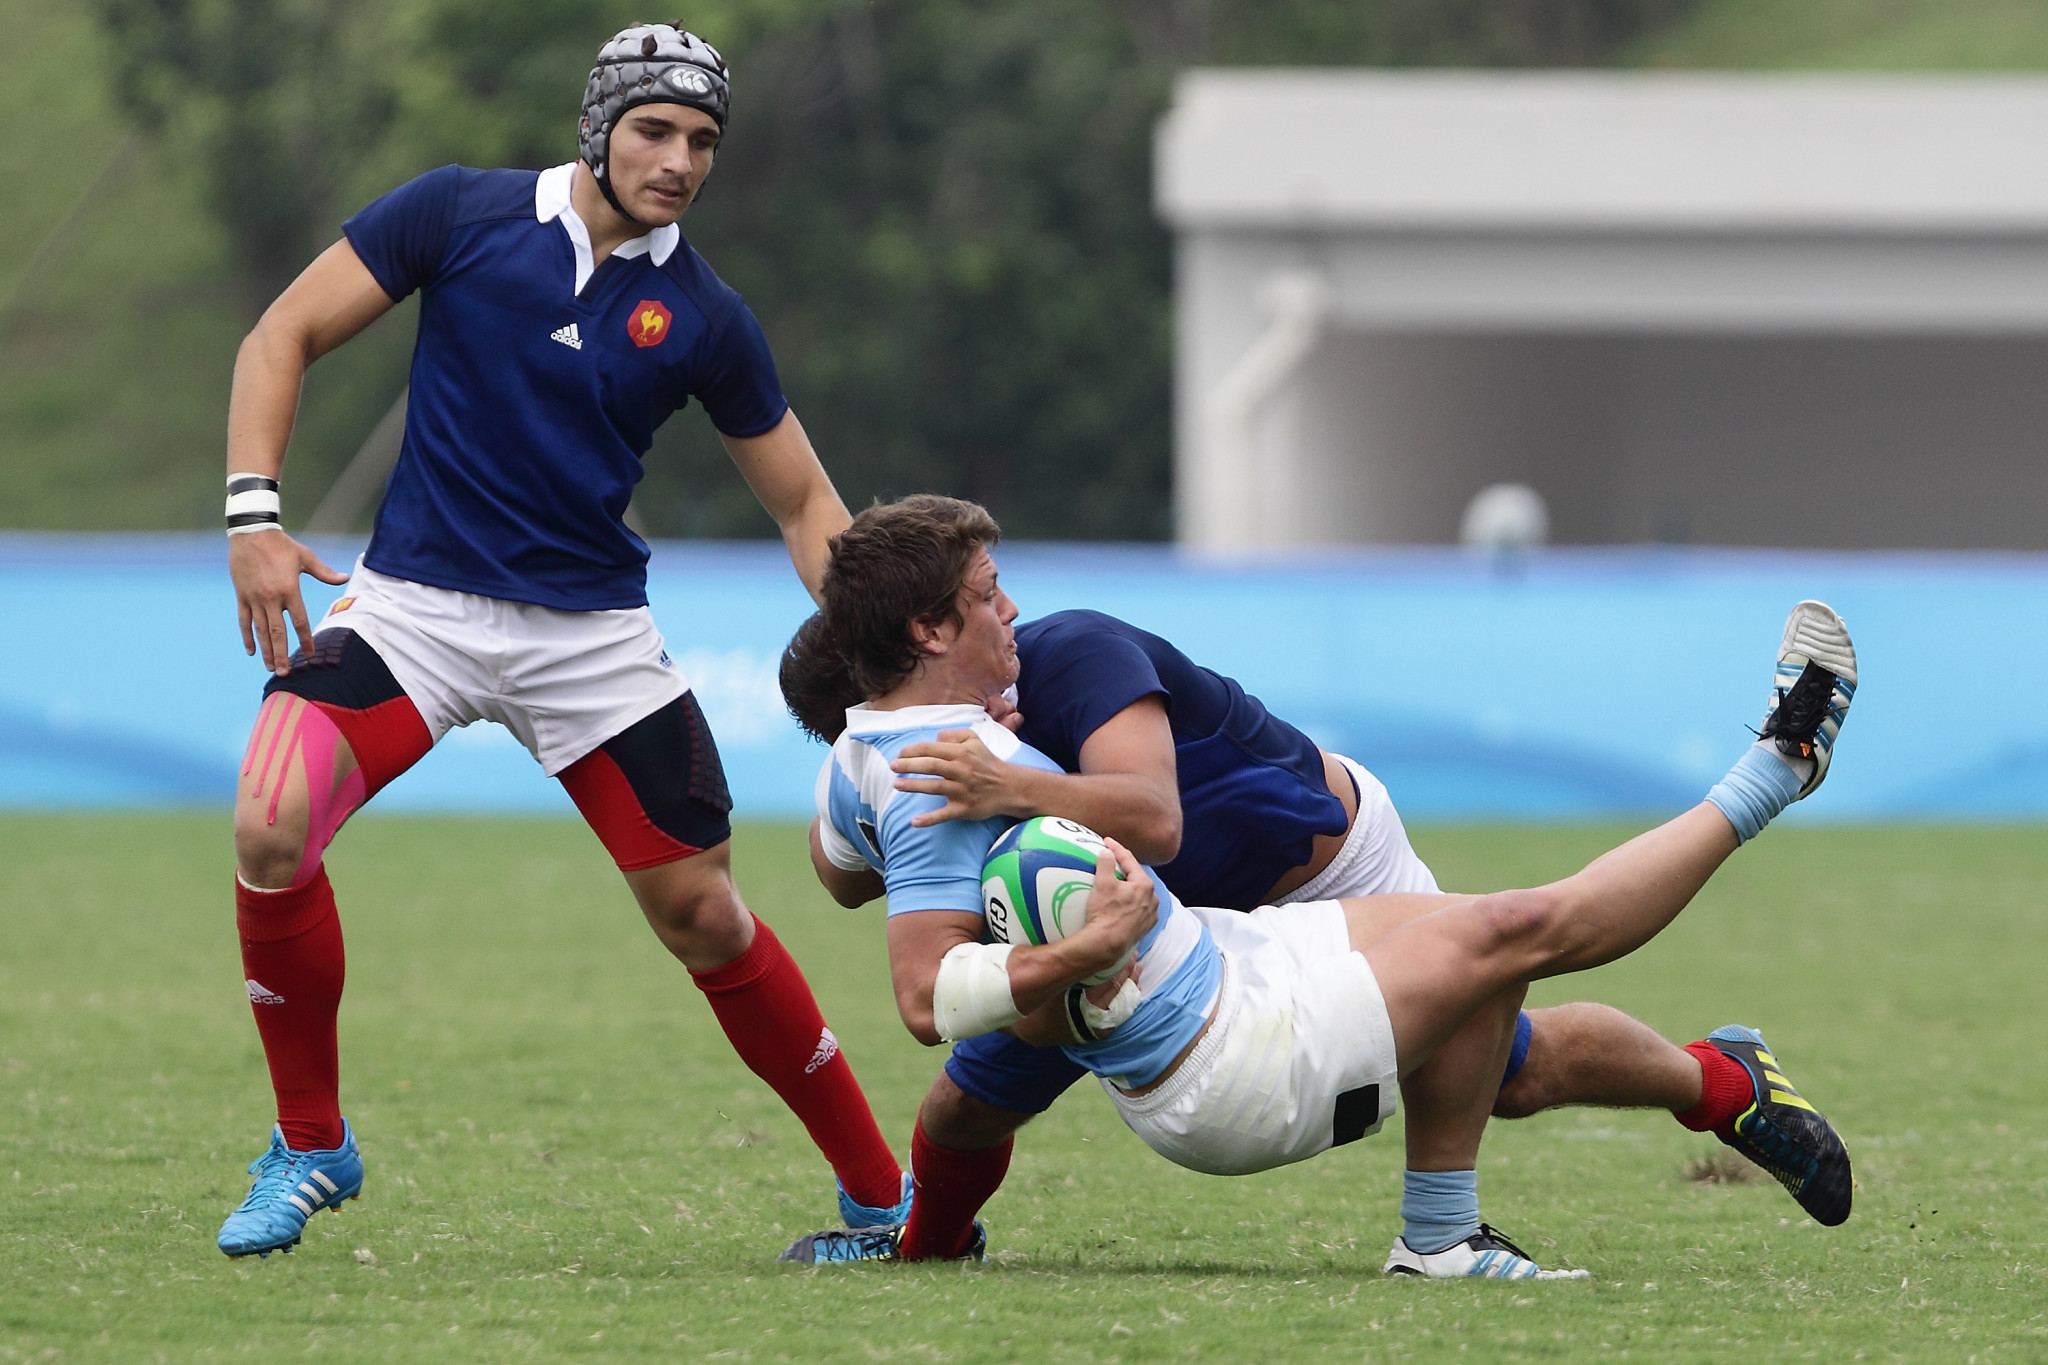 Rugby sevens made its Youth Olympic debut in Nanjing in 2014 ©Getty Images